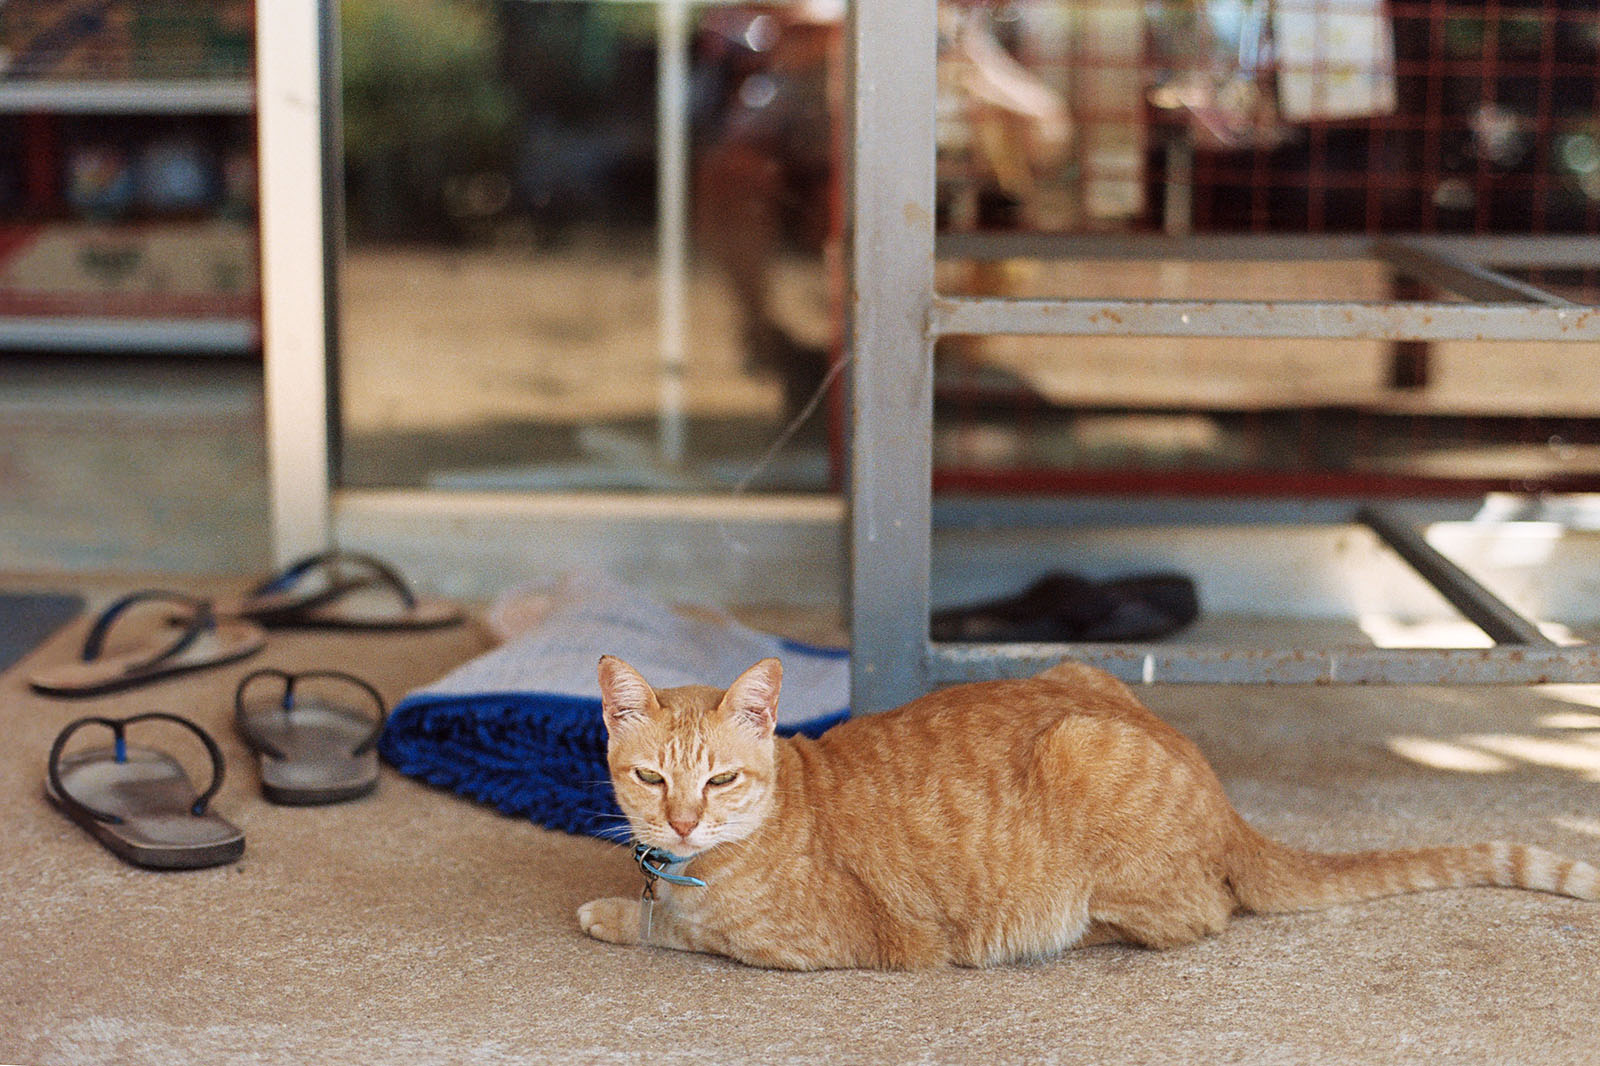 Koh Mak bodega cat guarding flip-flops | Thailand Travel Photos